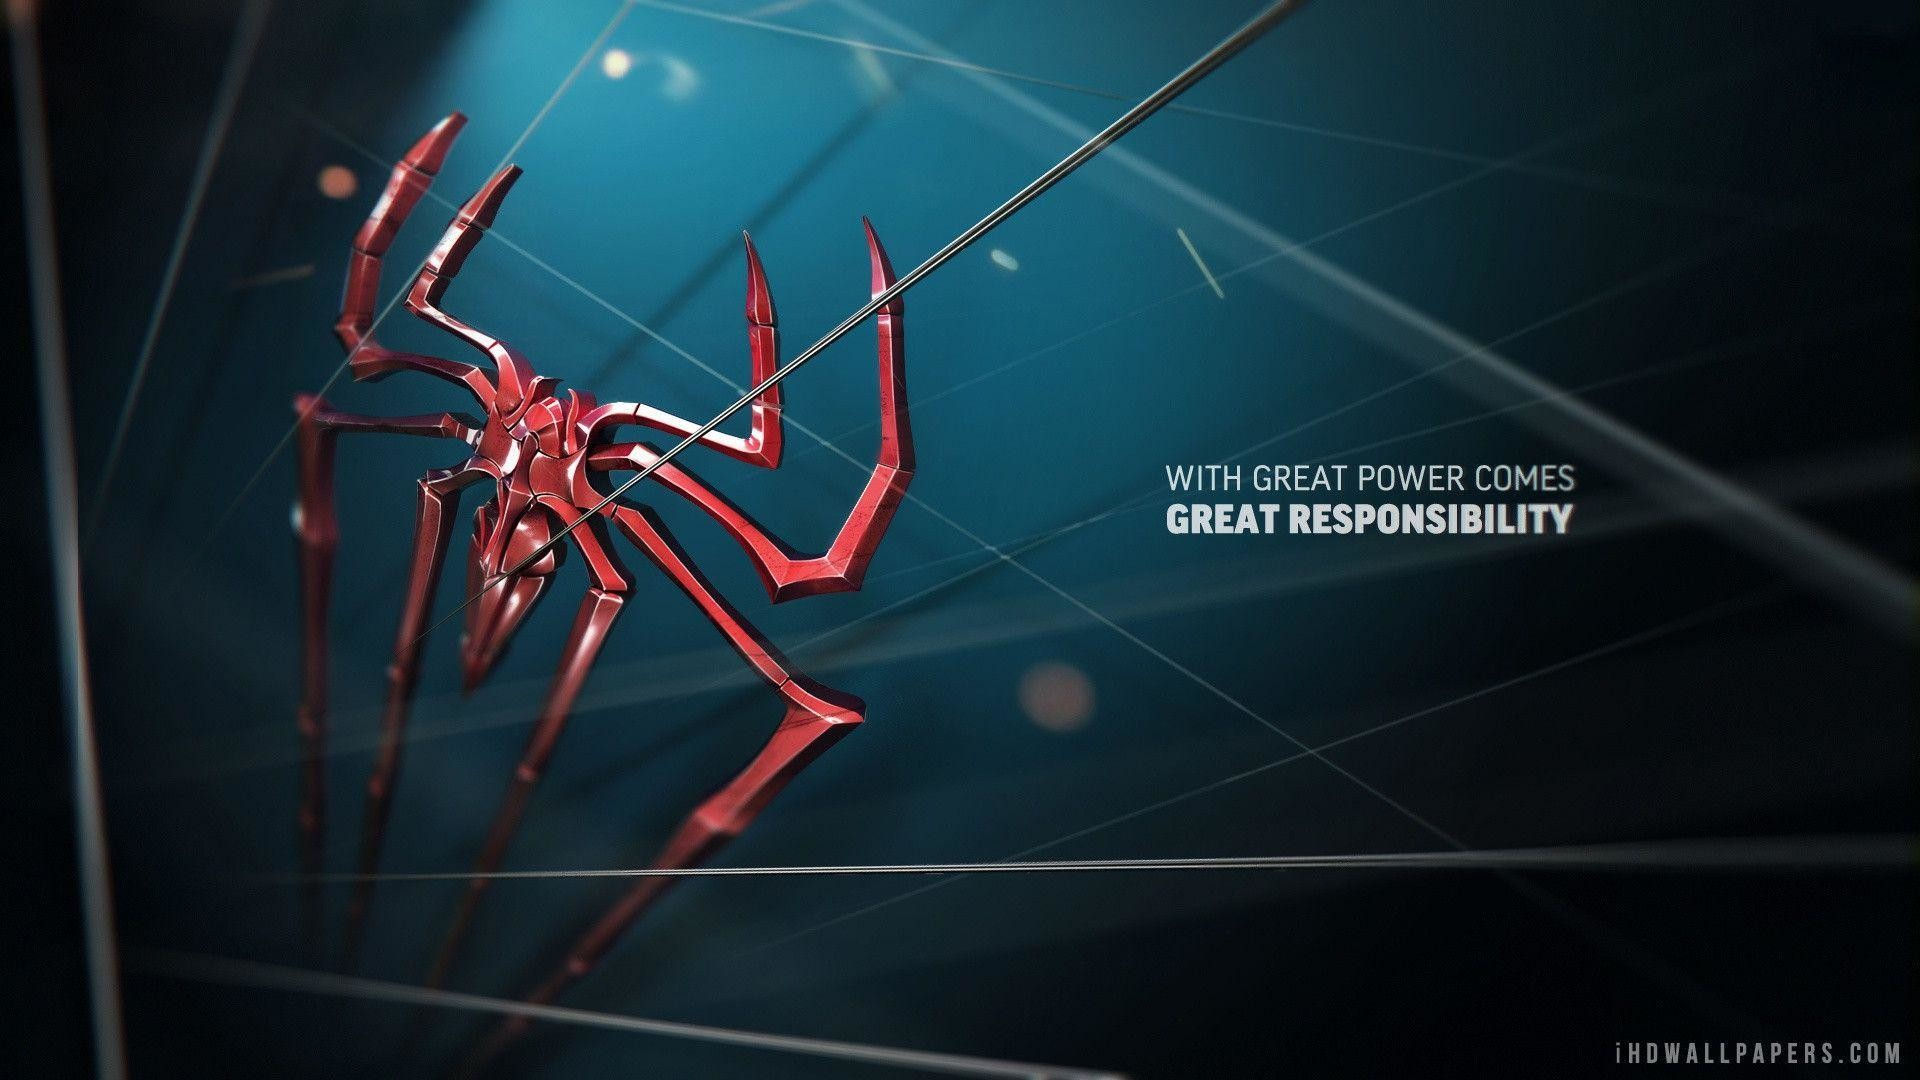 Wallpapers For > Spiderman Wallpaper Hd 1080p